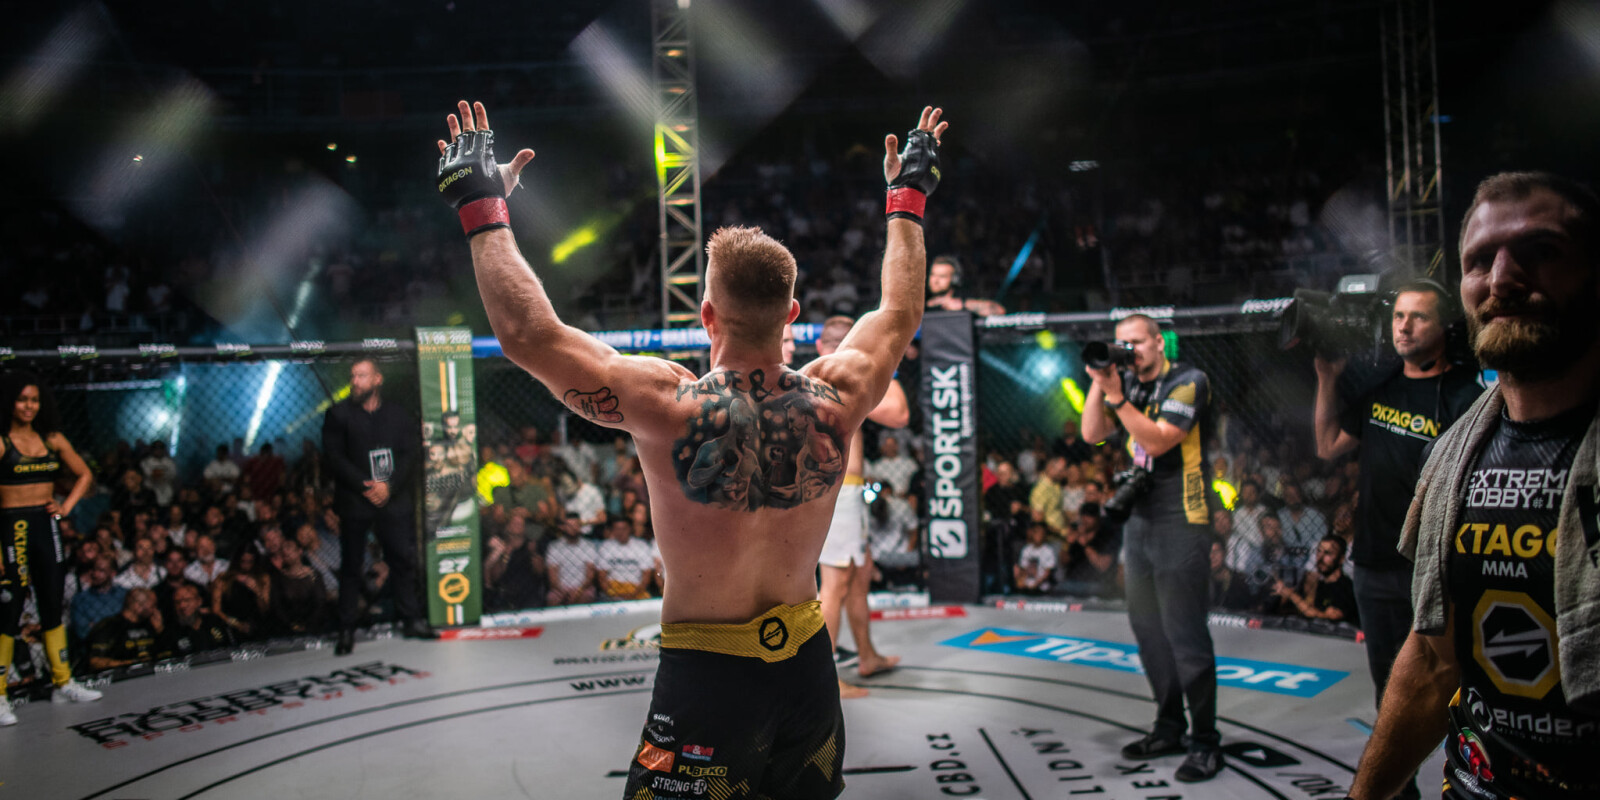 Monster sponsored MMA Tournament Oktagon 26 taking place in Prague,, Czech Republic including public weightin and afterparty concerts